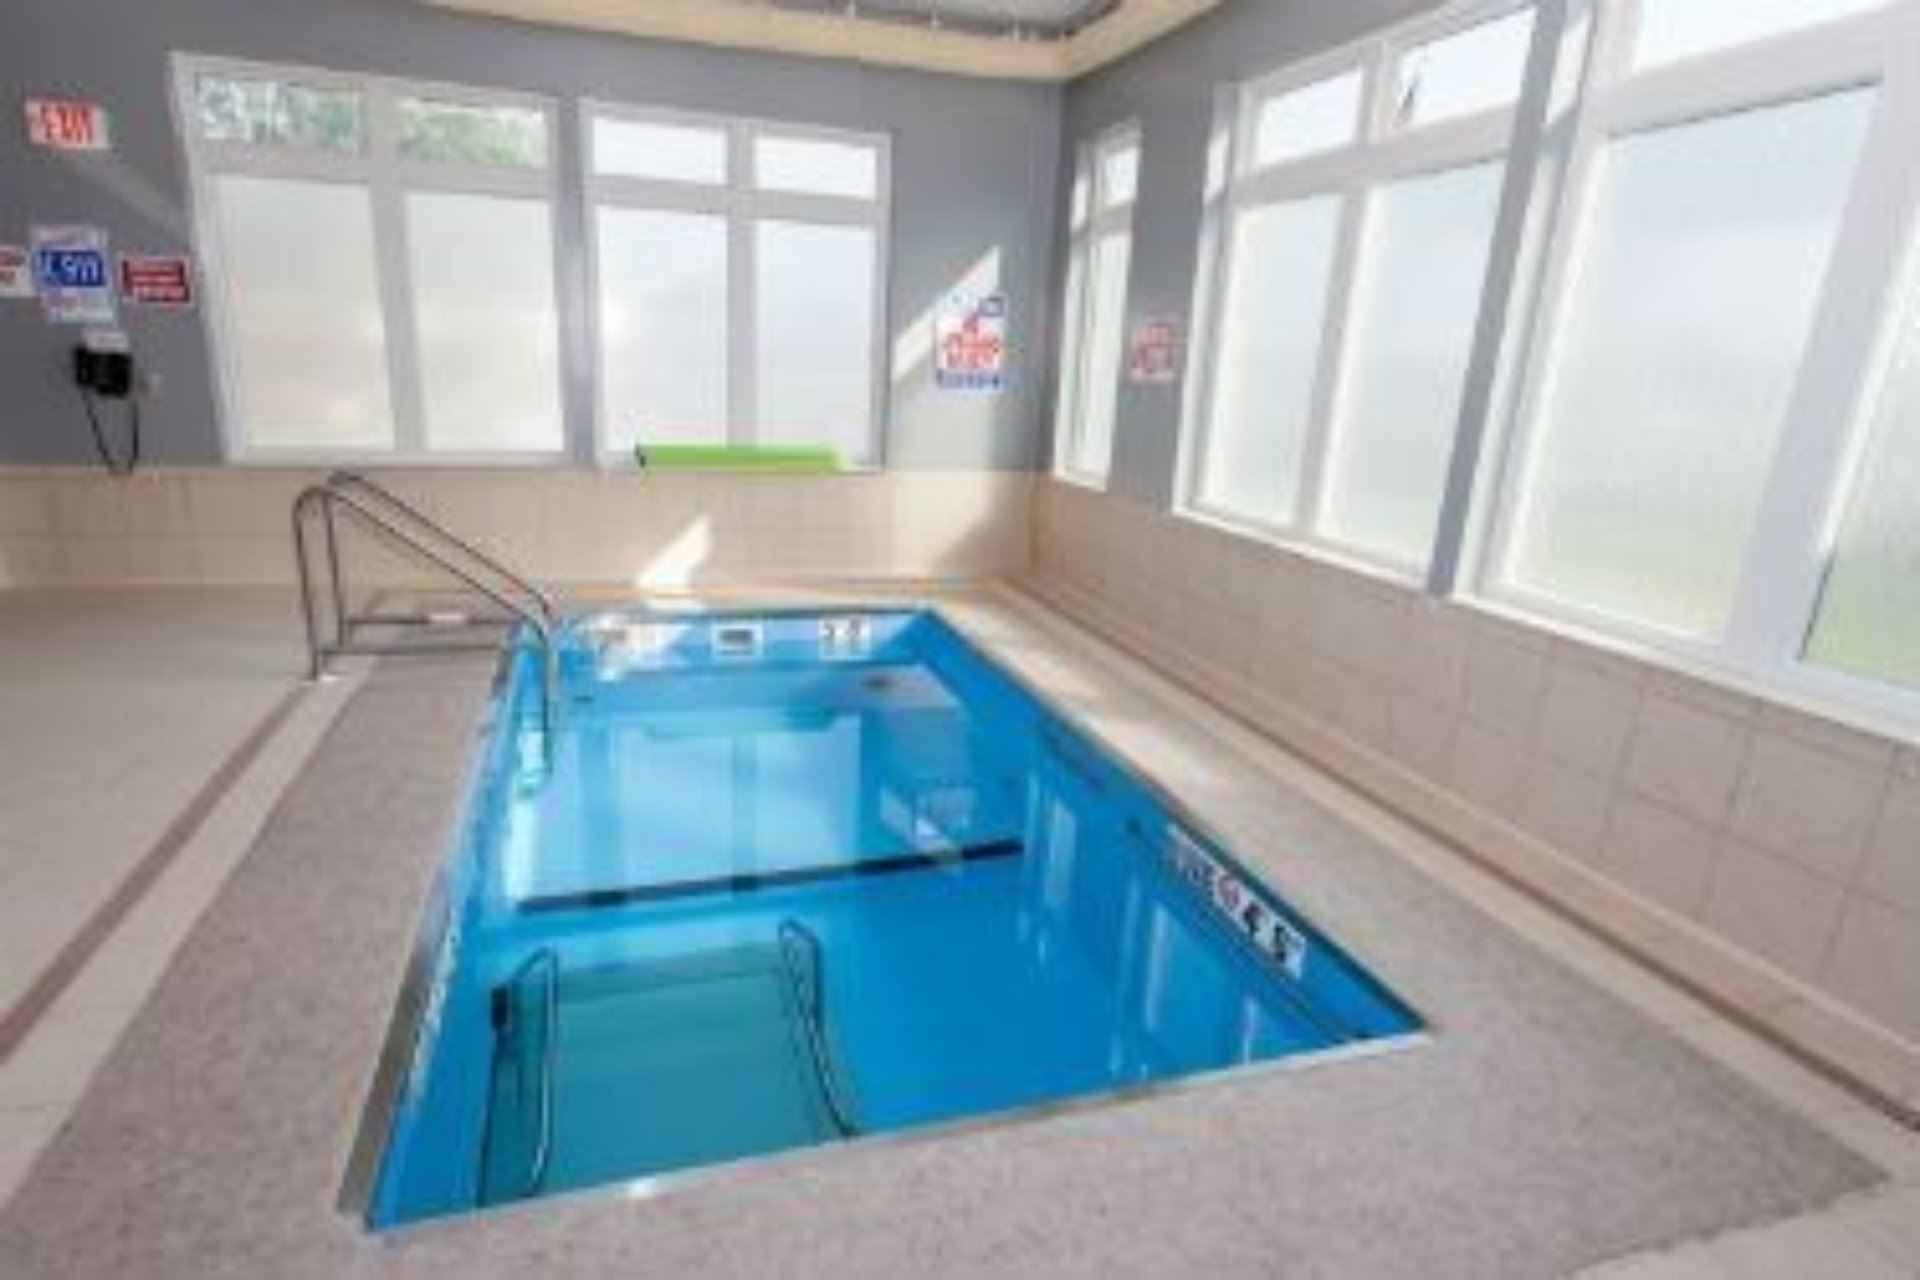 Health Center Therapy Pool